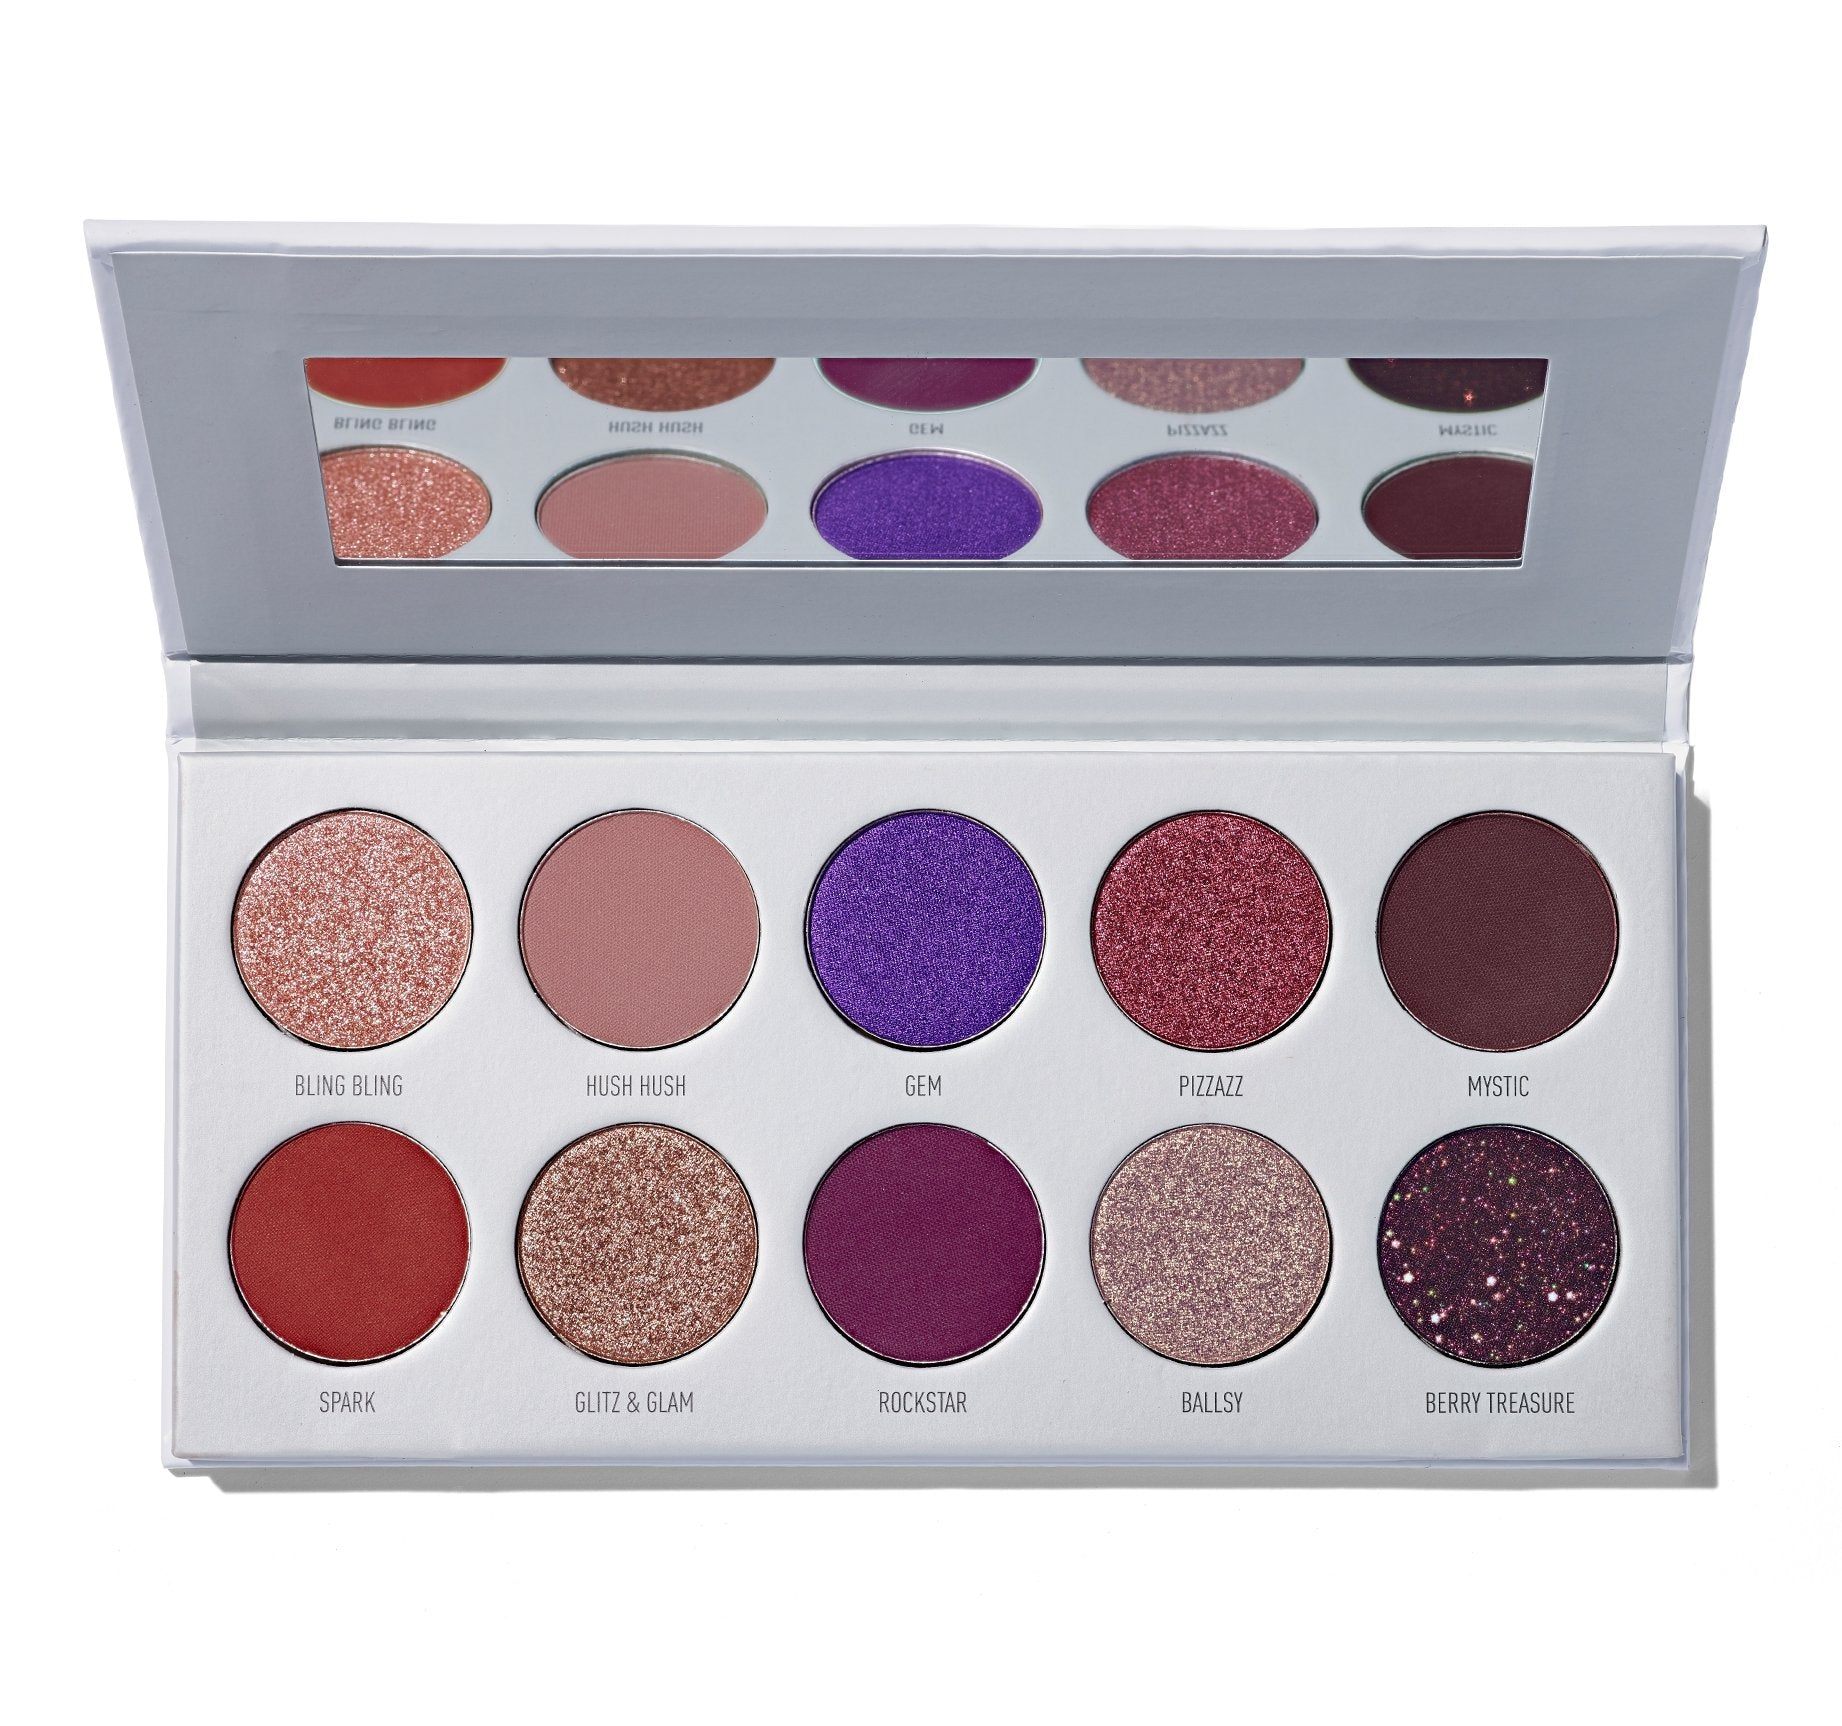 BLING BOSS EYESHADOW PALETTE, view larger image